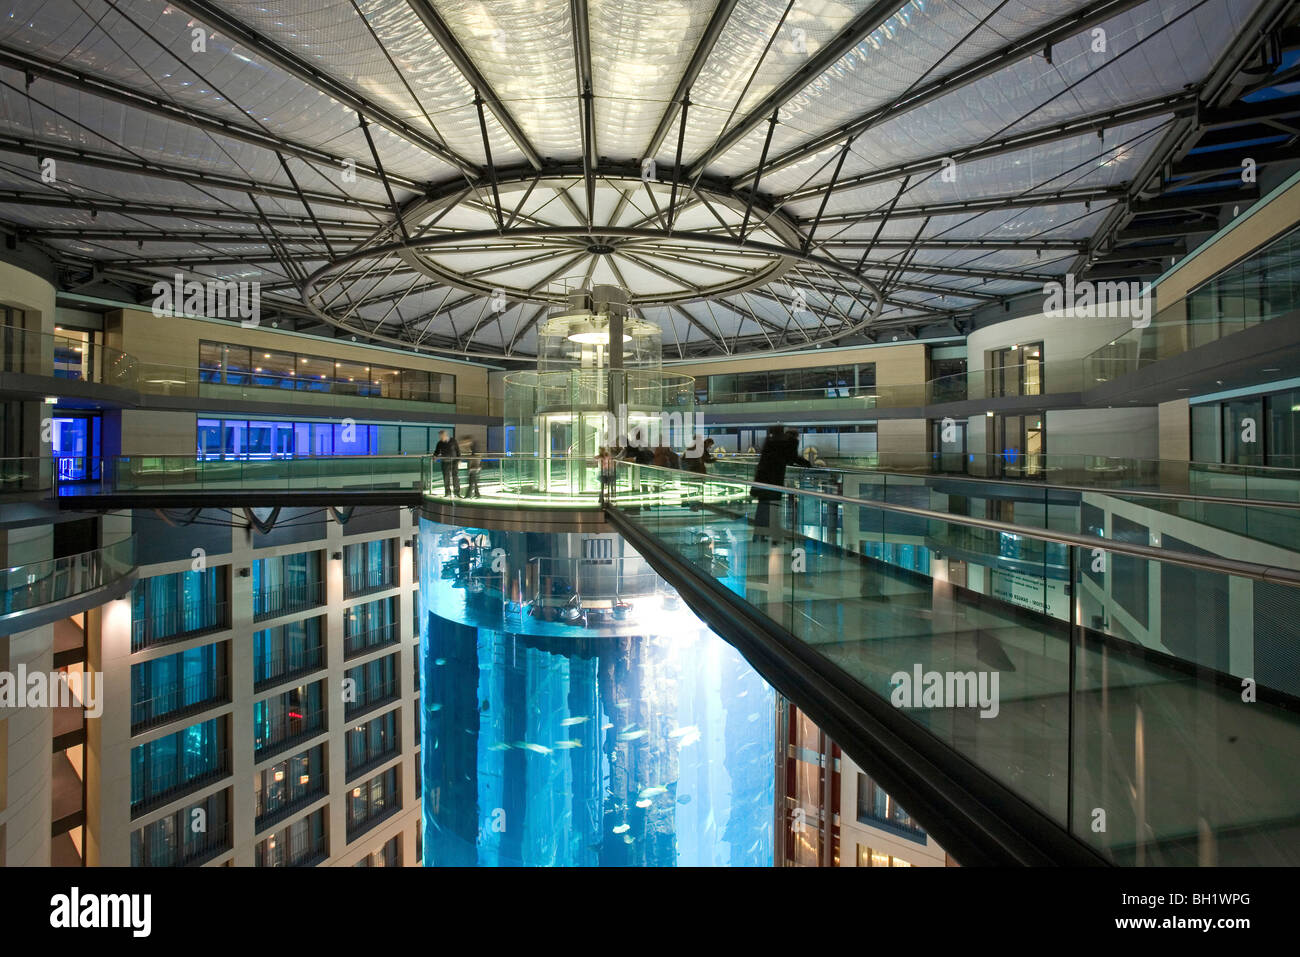 the 5 star Radisson SAS Hotel features the world's largest cylindrical aquarium, Berlin, entrance to Aqua Dom, - Stock Image